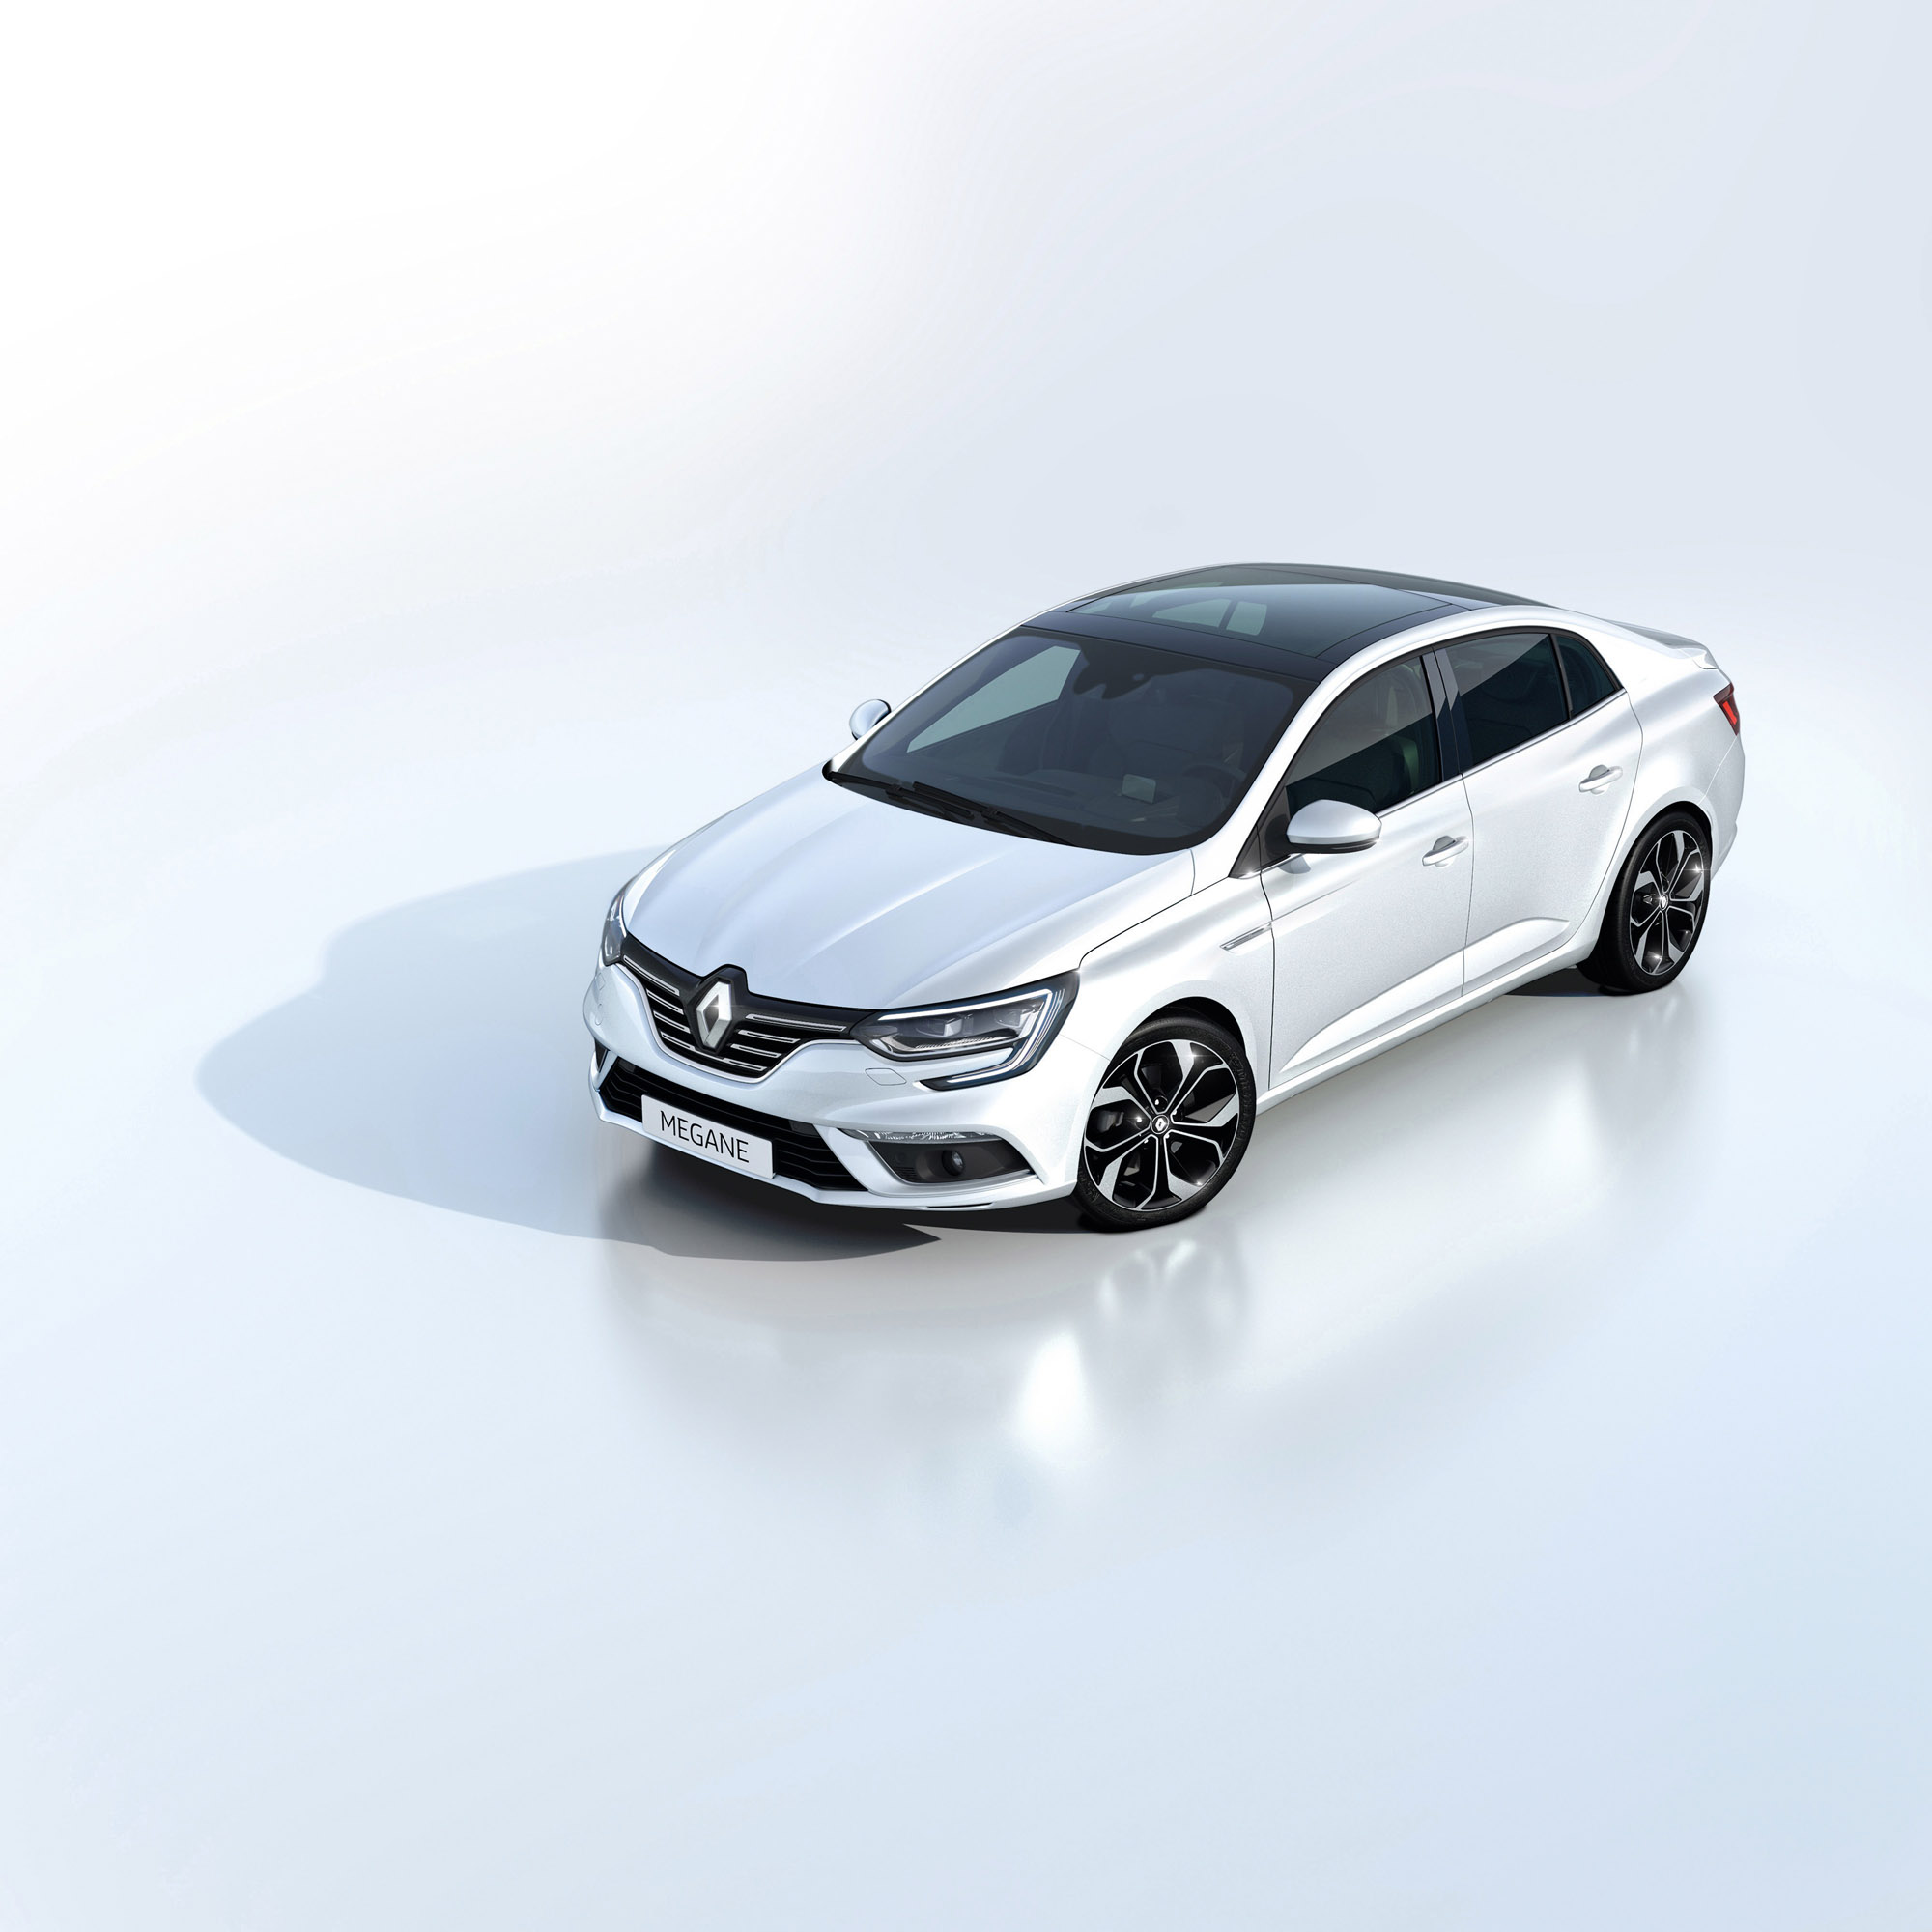 Renault Megane Coupe: Renault Unveils The Megane Grand Coupe